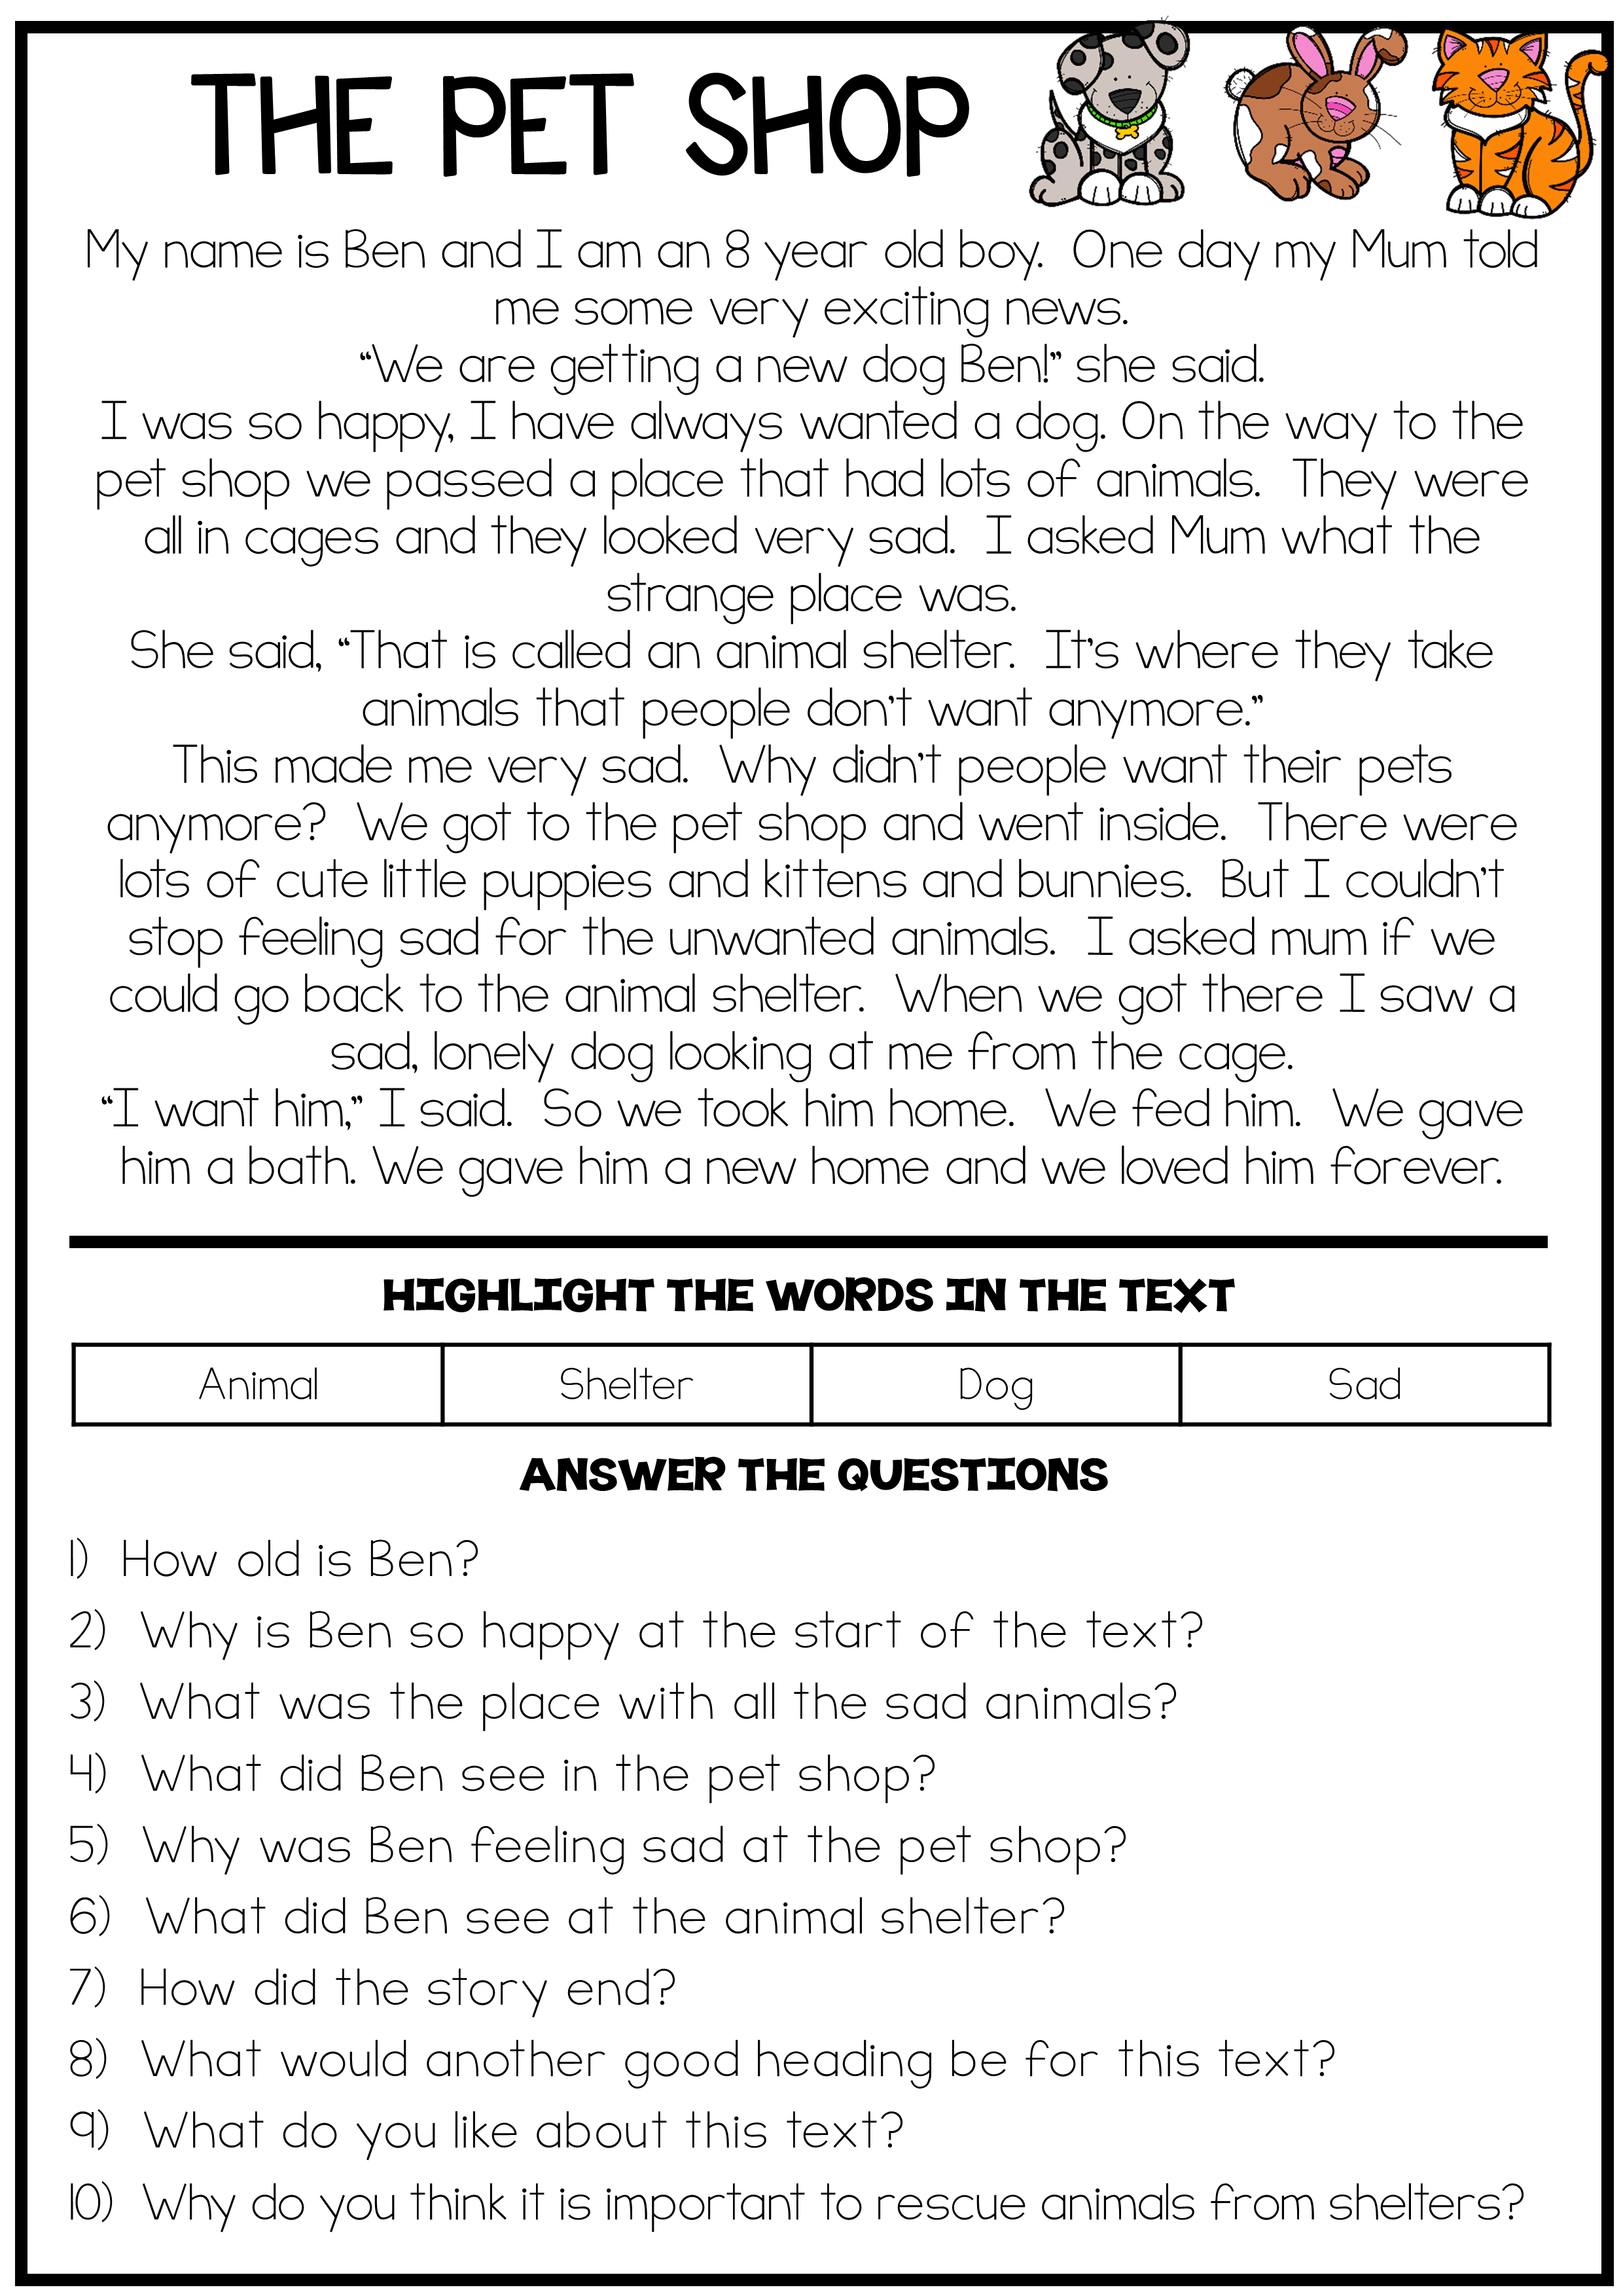 The Pet Shop - Reading Comprehension Passage | Reading ...